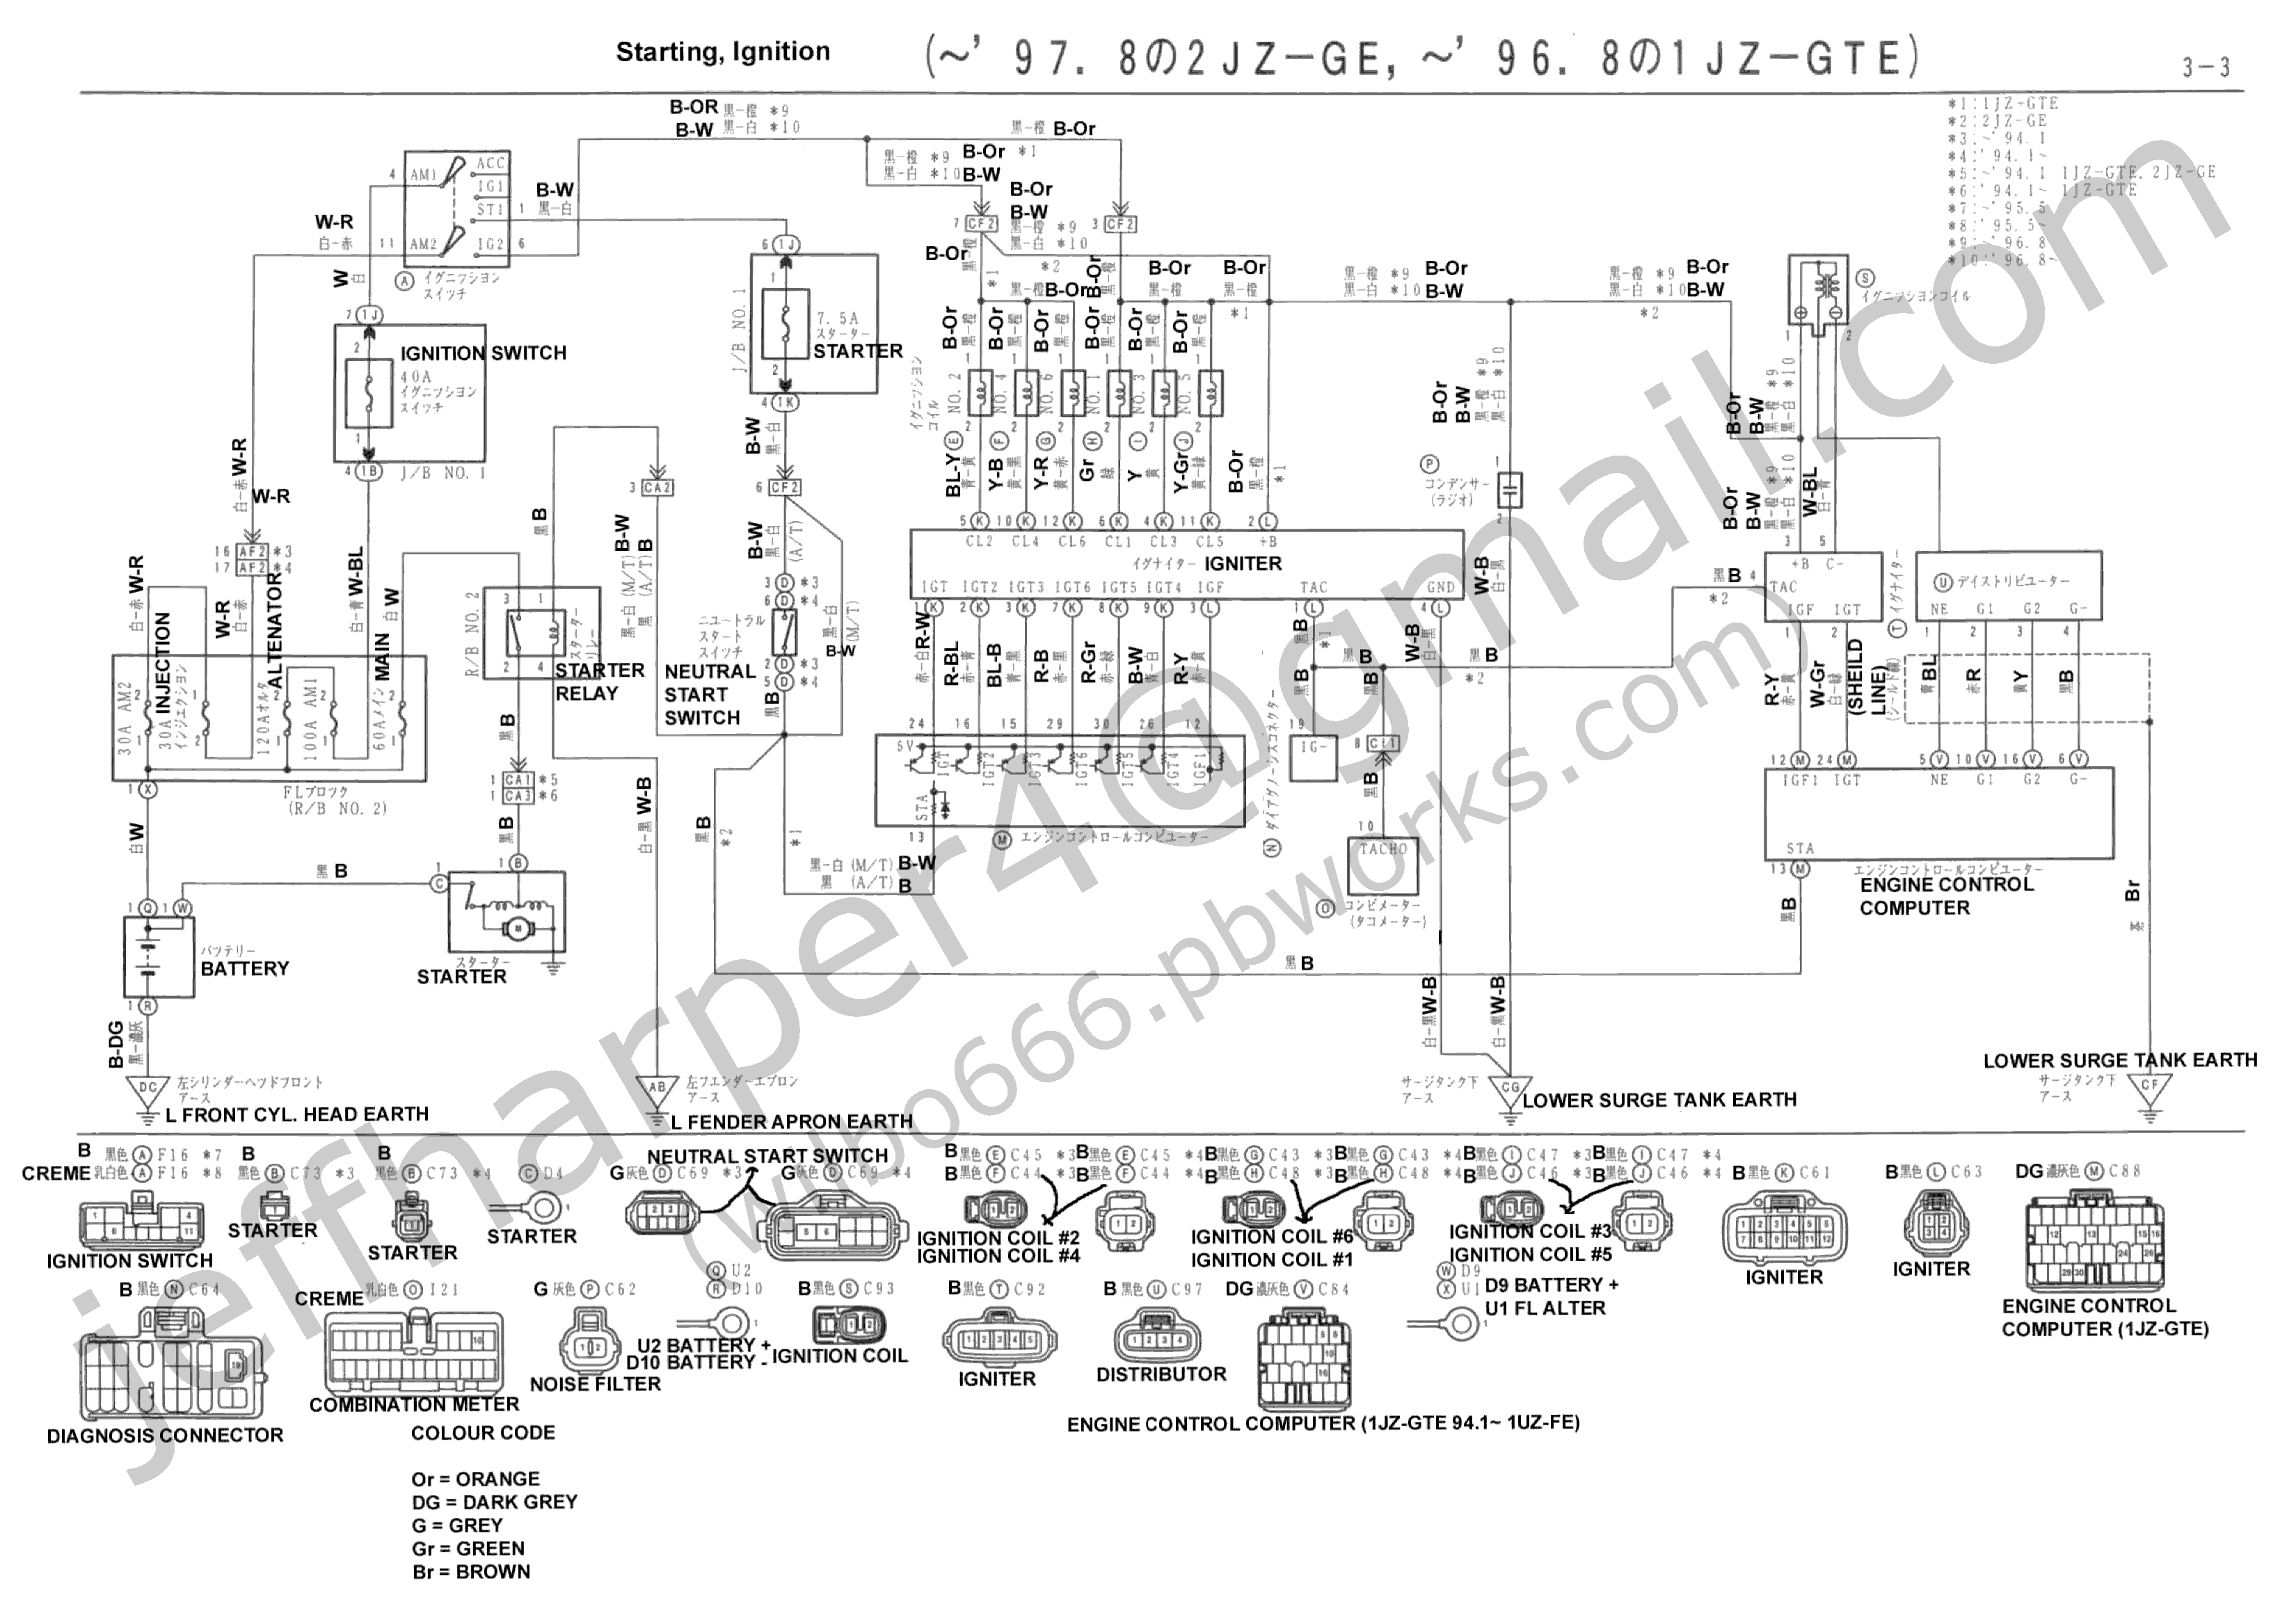 Wilbo666 1jz Gte Jzz30 Soarer Engine Wiring For 1jz Diagram